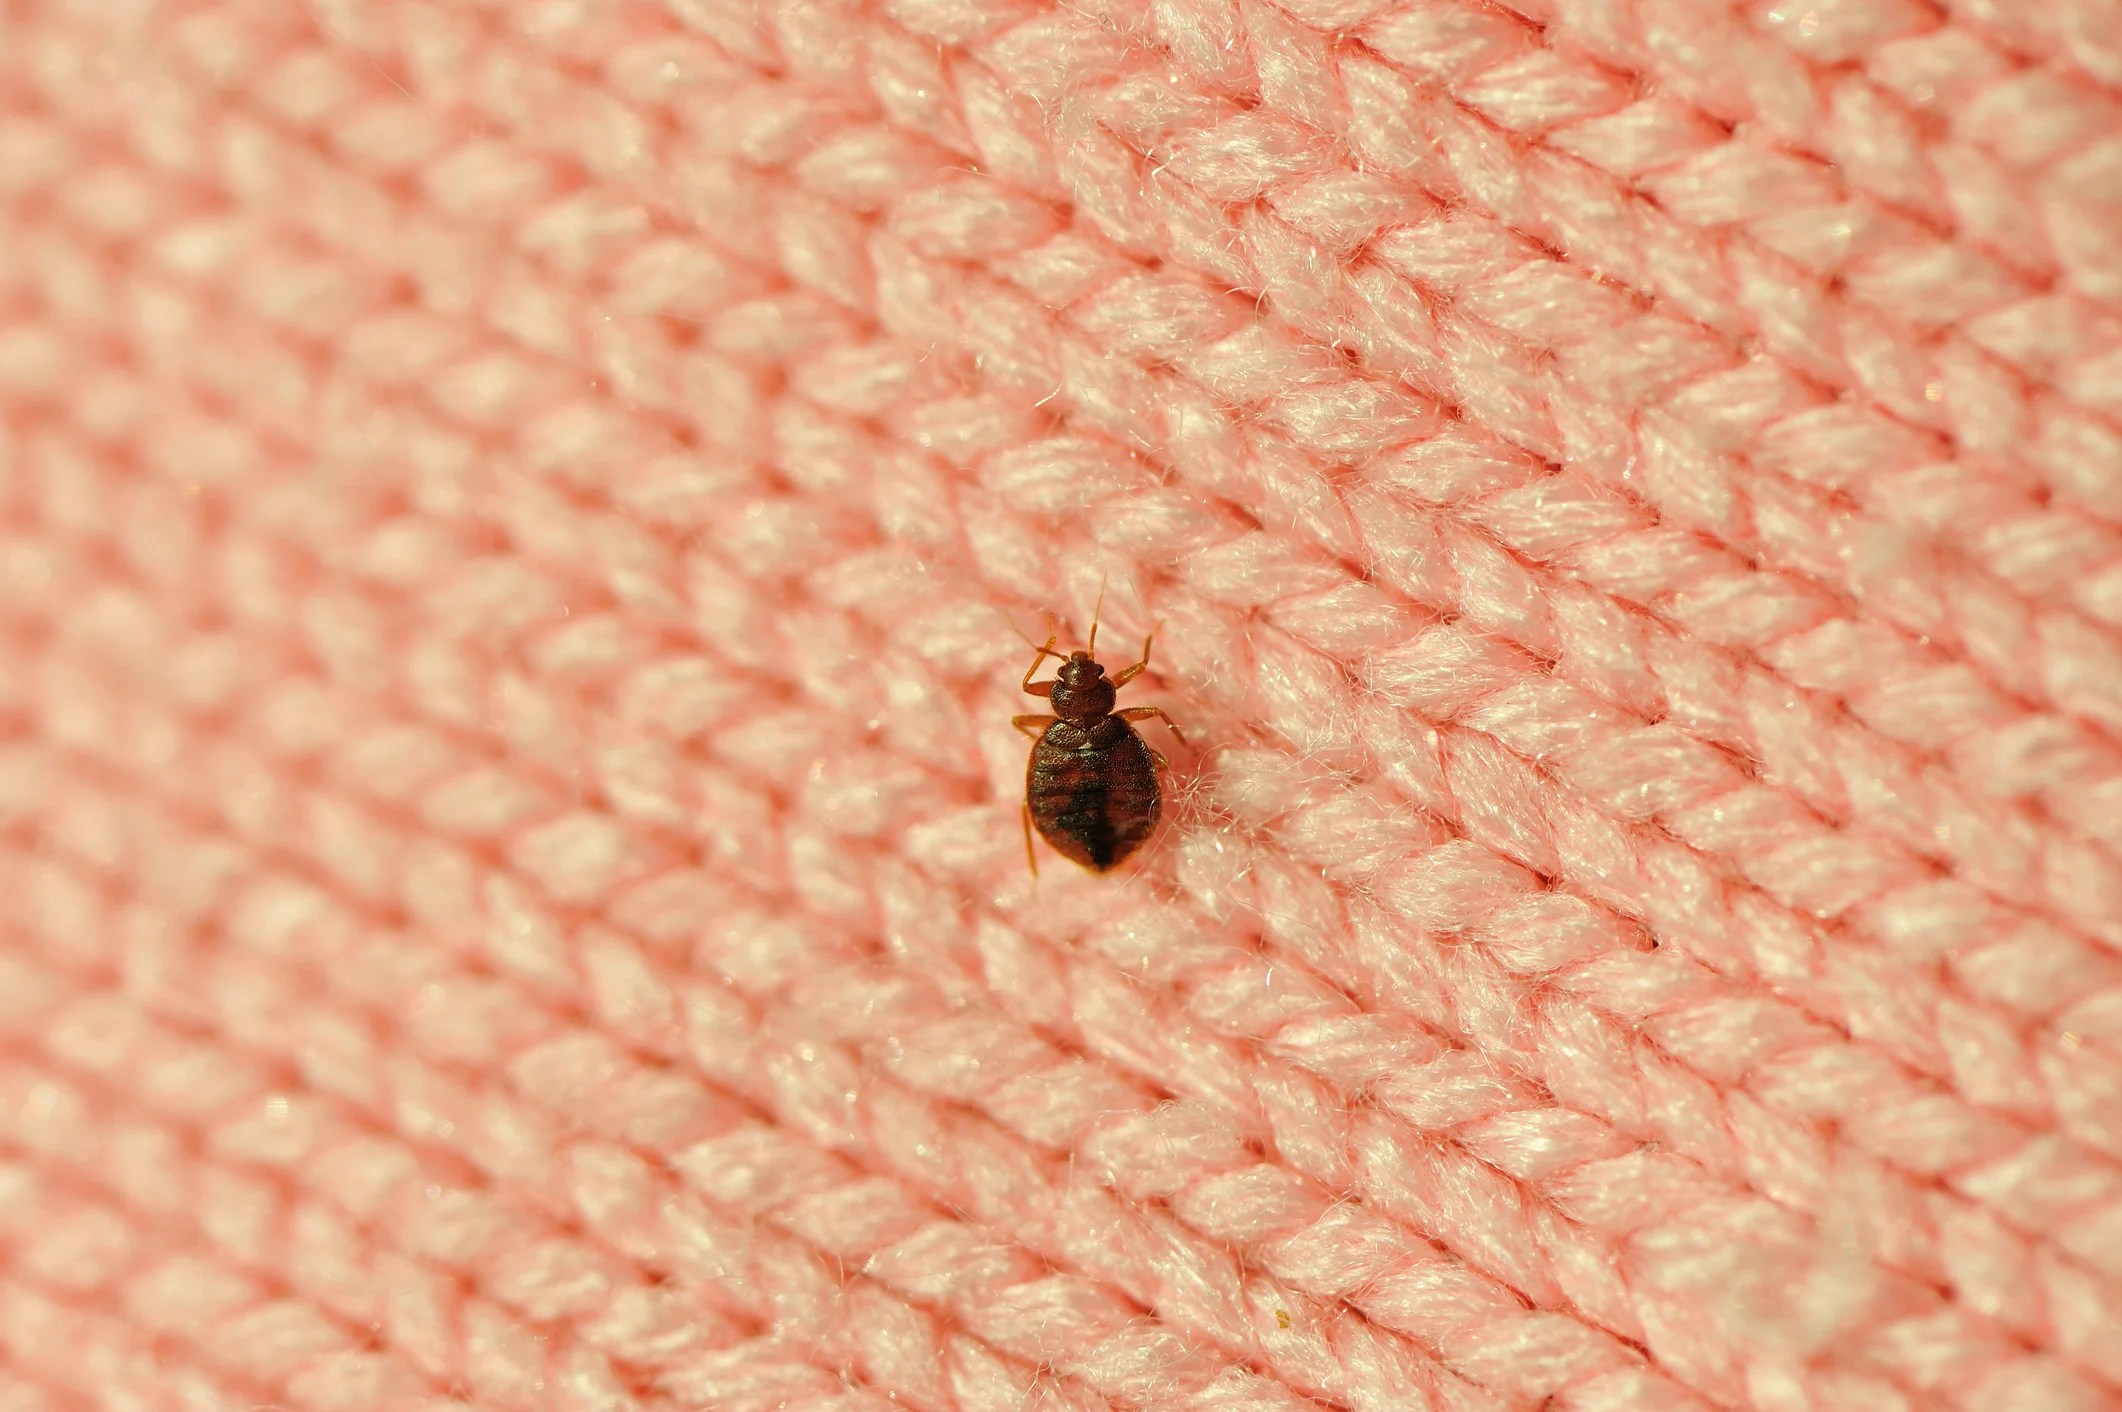 These Cities Had the Most Bed Bug Infestations in 2018